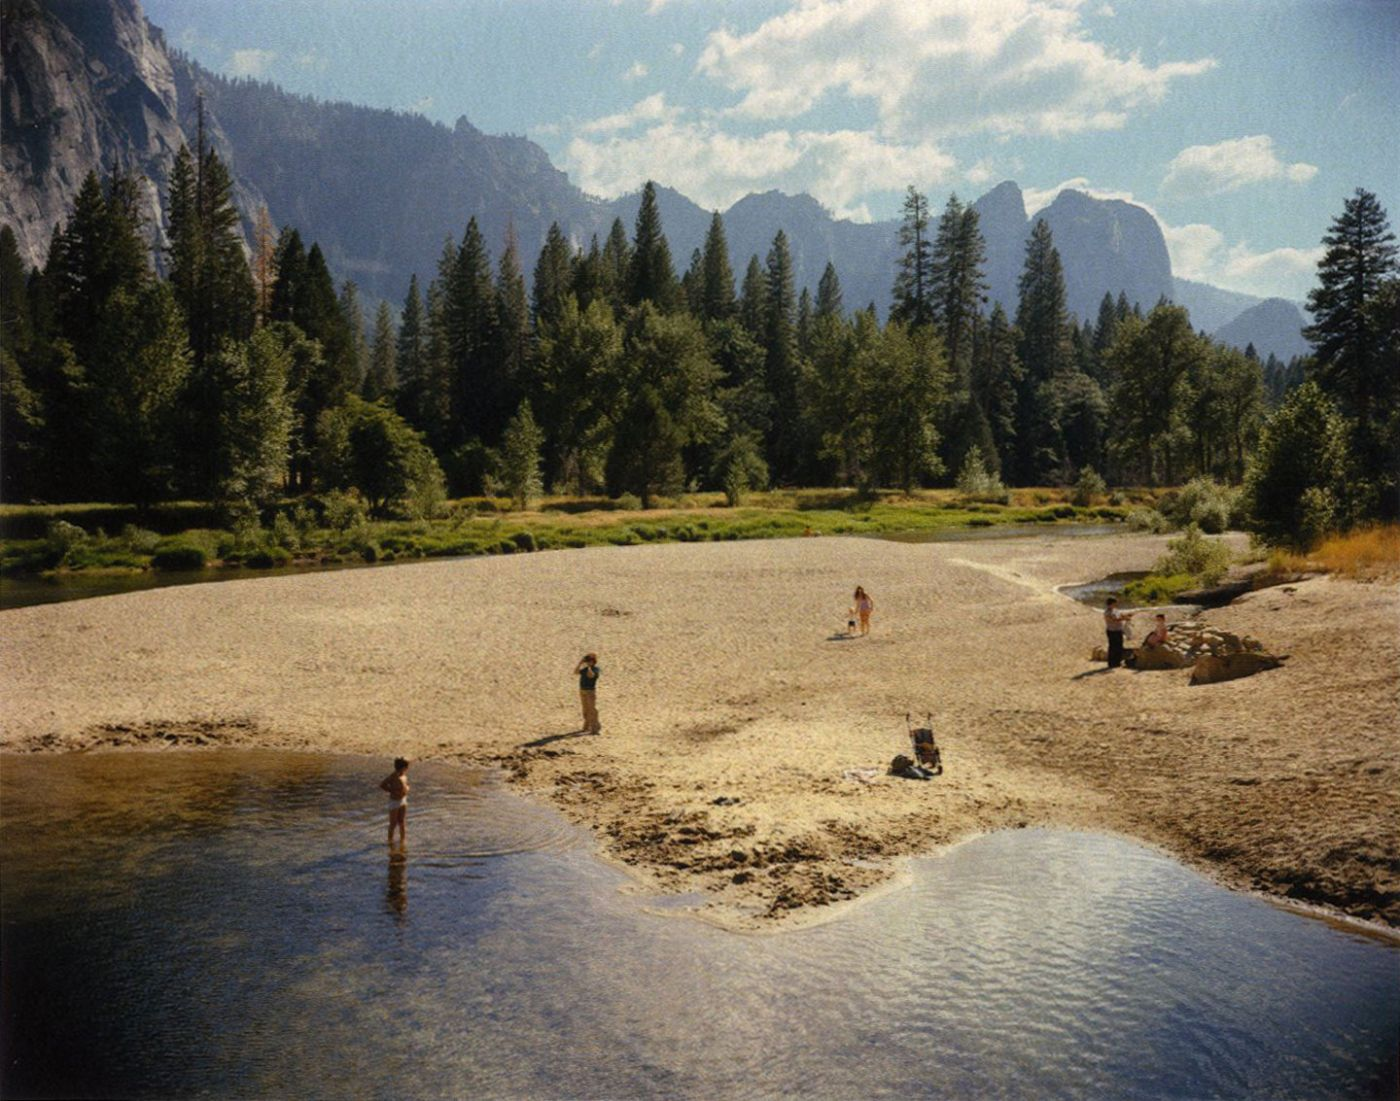 Stephen Shore: Merced River: Yosemite National Park, California 8/13/79 (One Picture Book #43), Limited Edition (with Print)